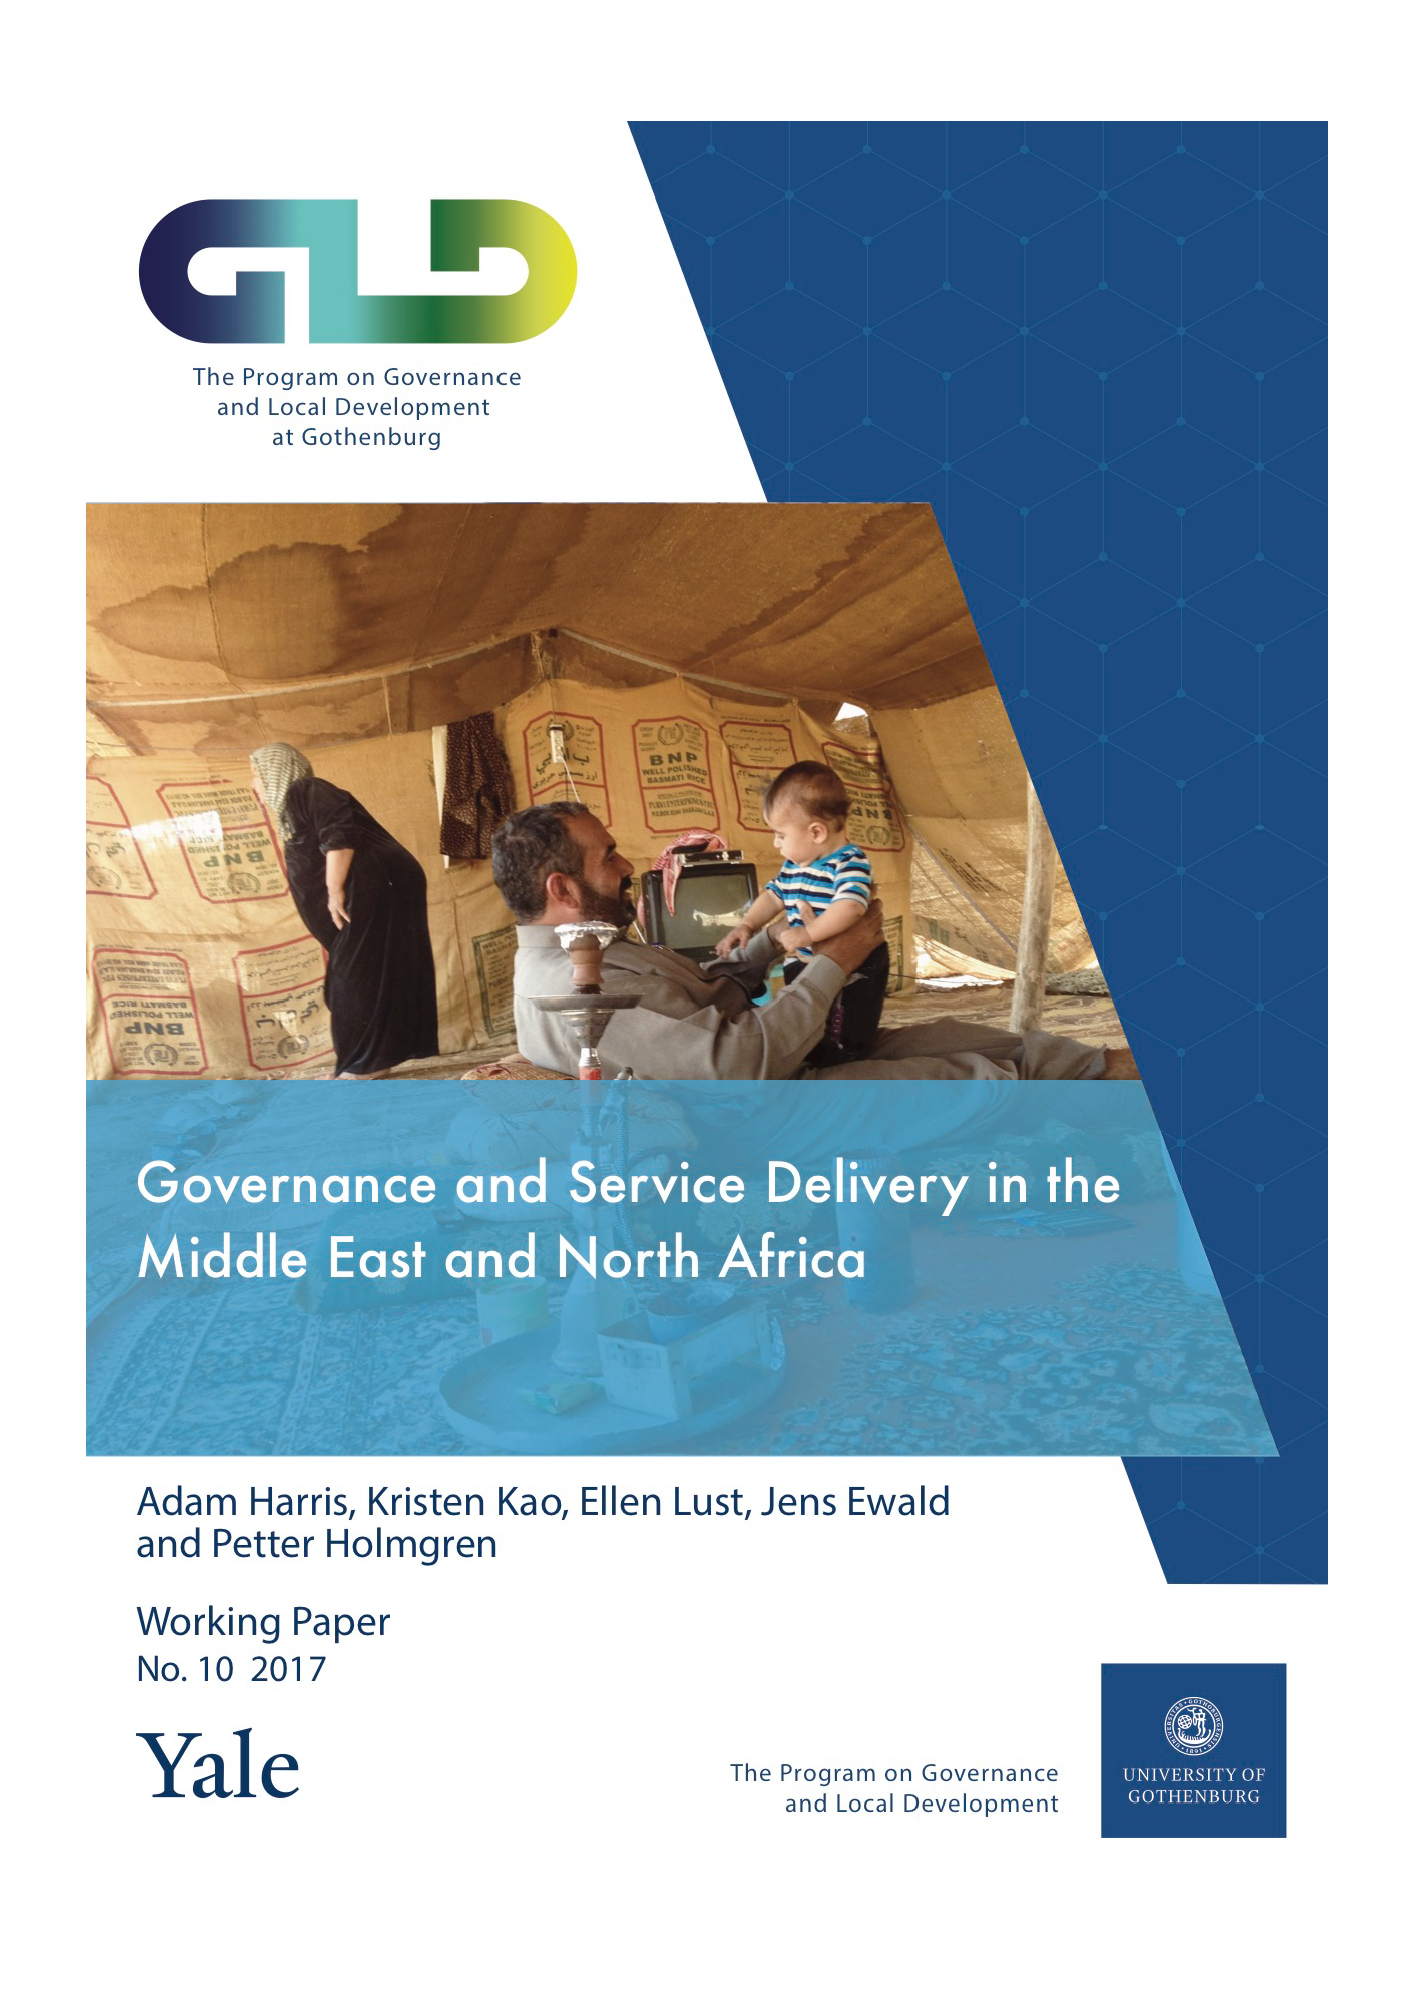 Governance in Service Delivery in the Middle East and North Africa.png